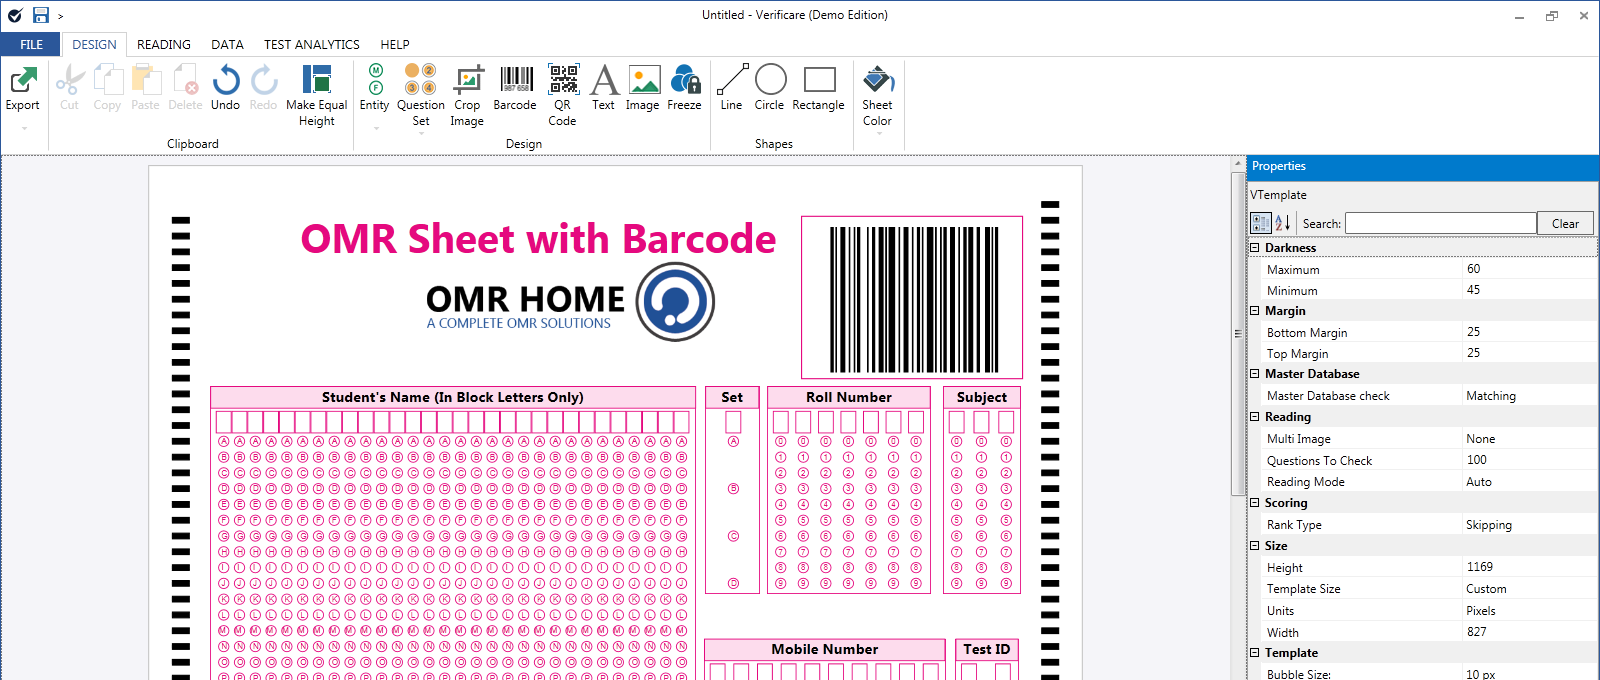 omr sheet with barcode